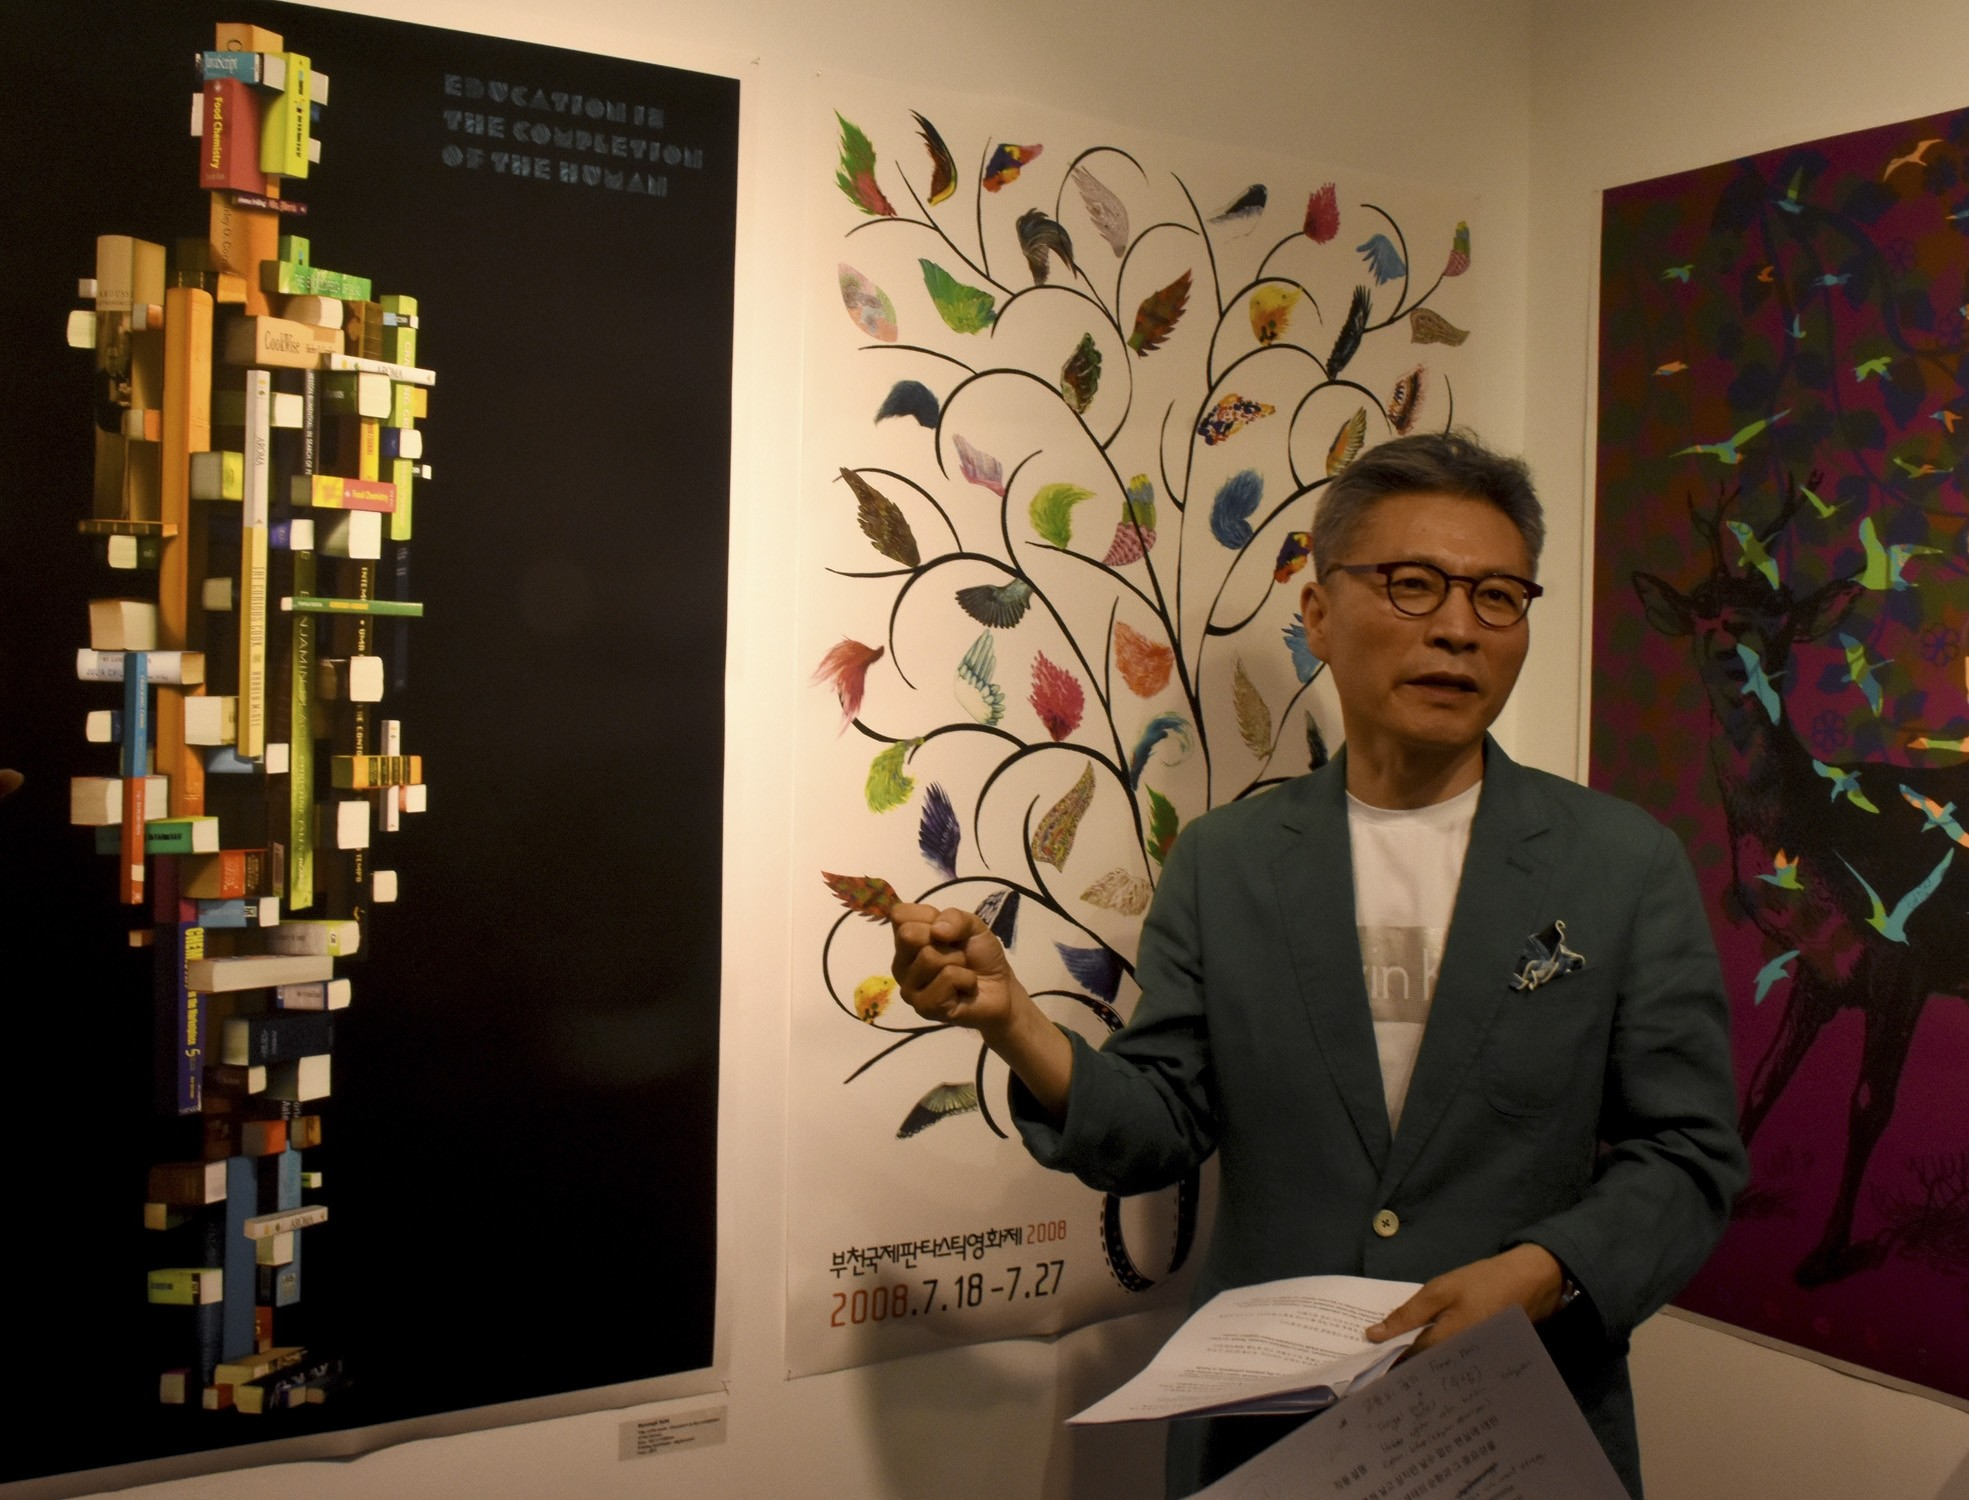 Korean graphic artist Byoungil Sun speaks on a work at the exhibition.